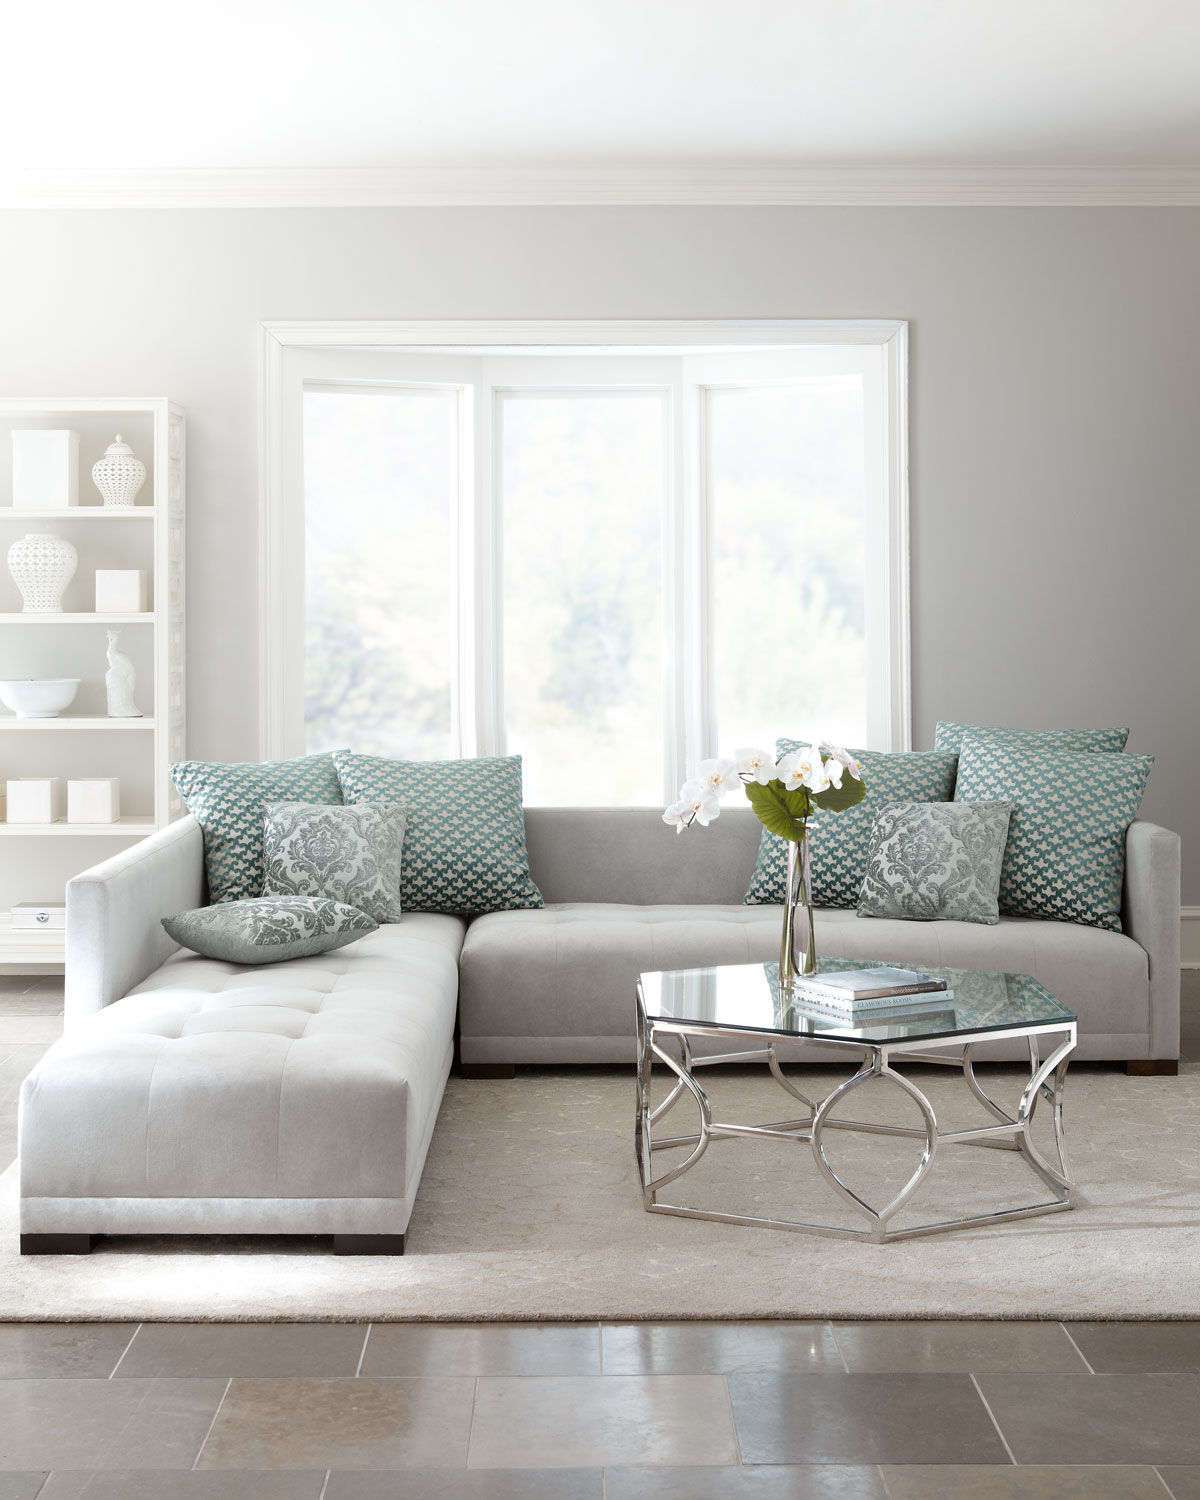 7 Ways To Use Duck Egg Blue Spruce Up Your Living Room Decor 1